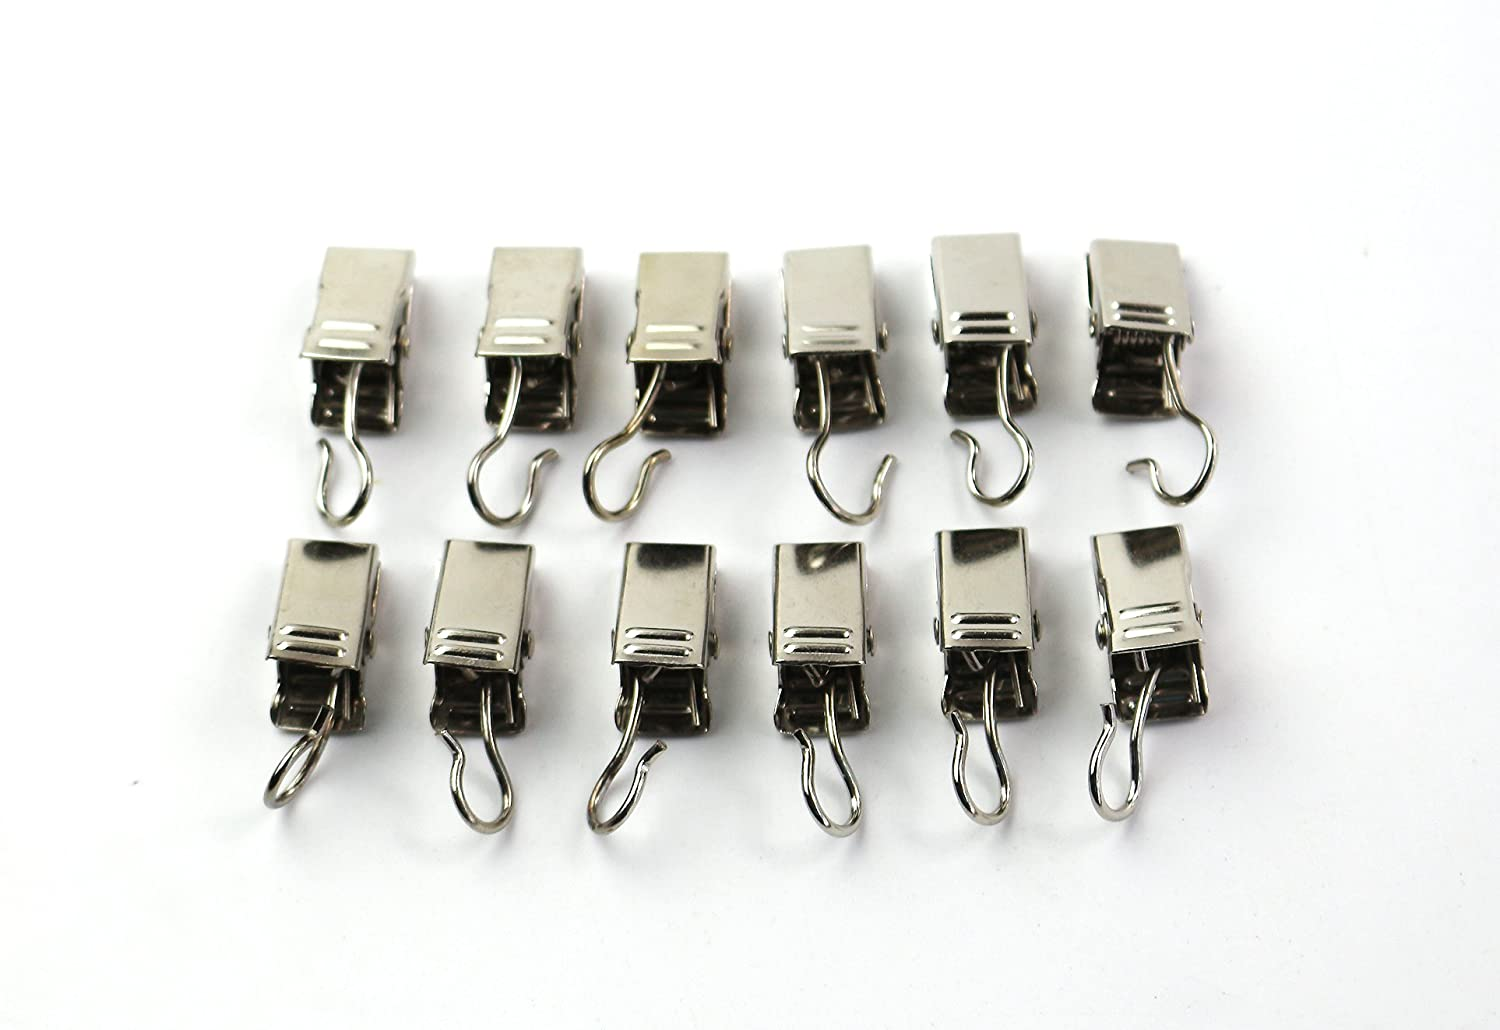 Furnishland 24 Pcs Curtain Hooks with Clips, Nickel Finish